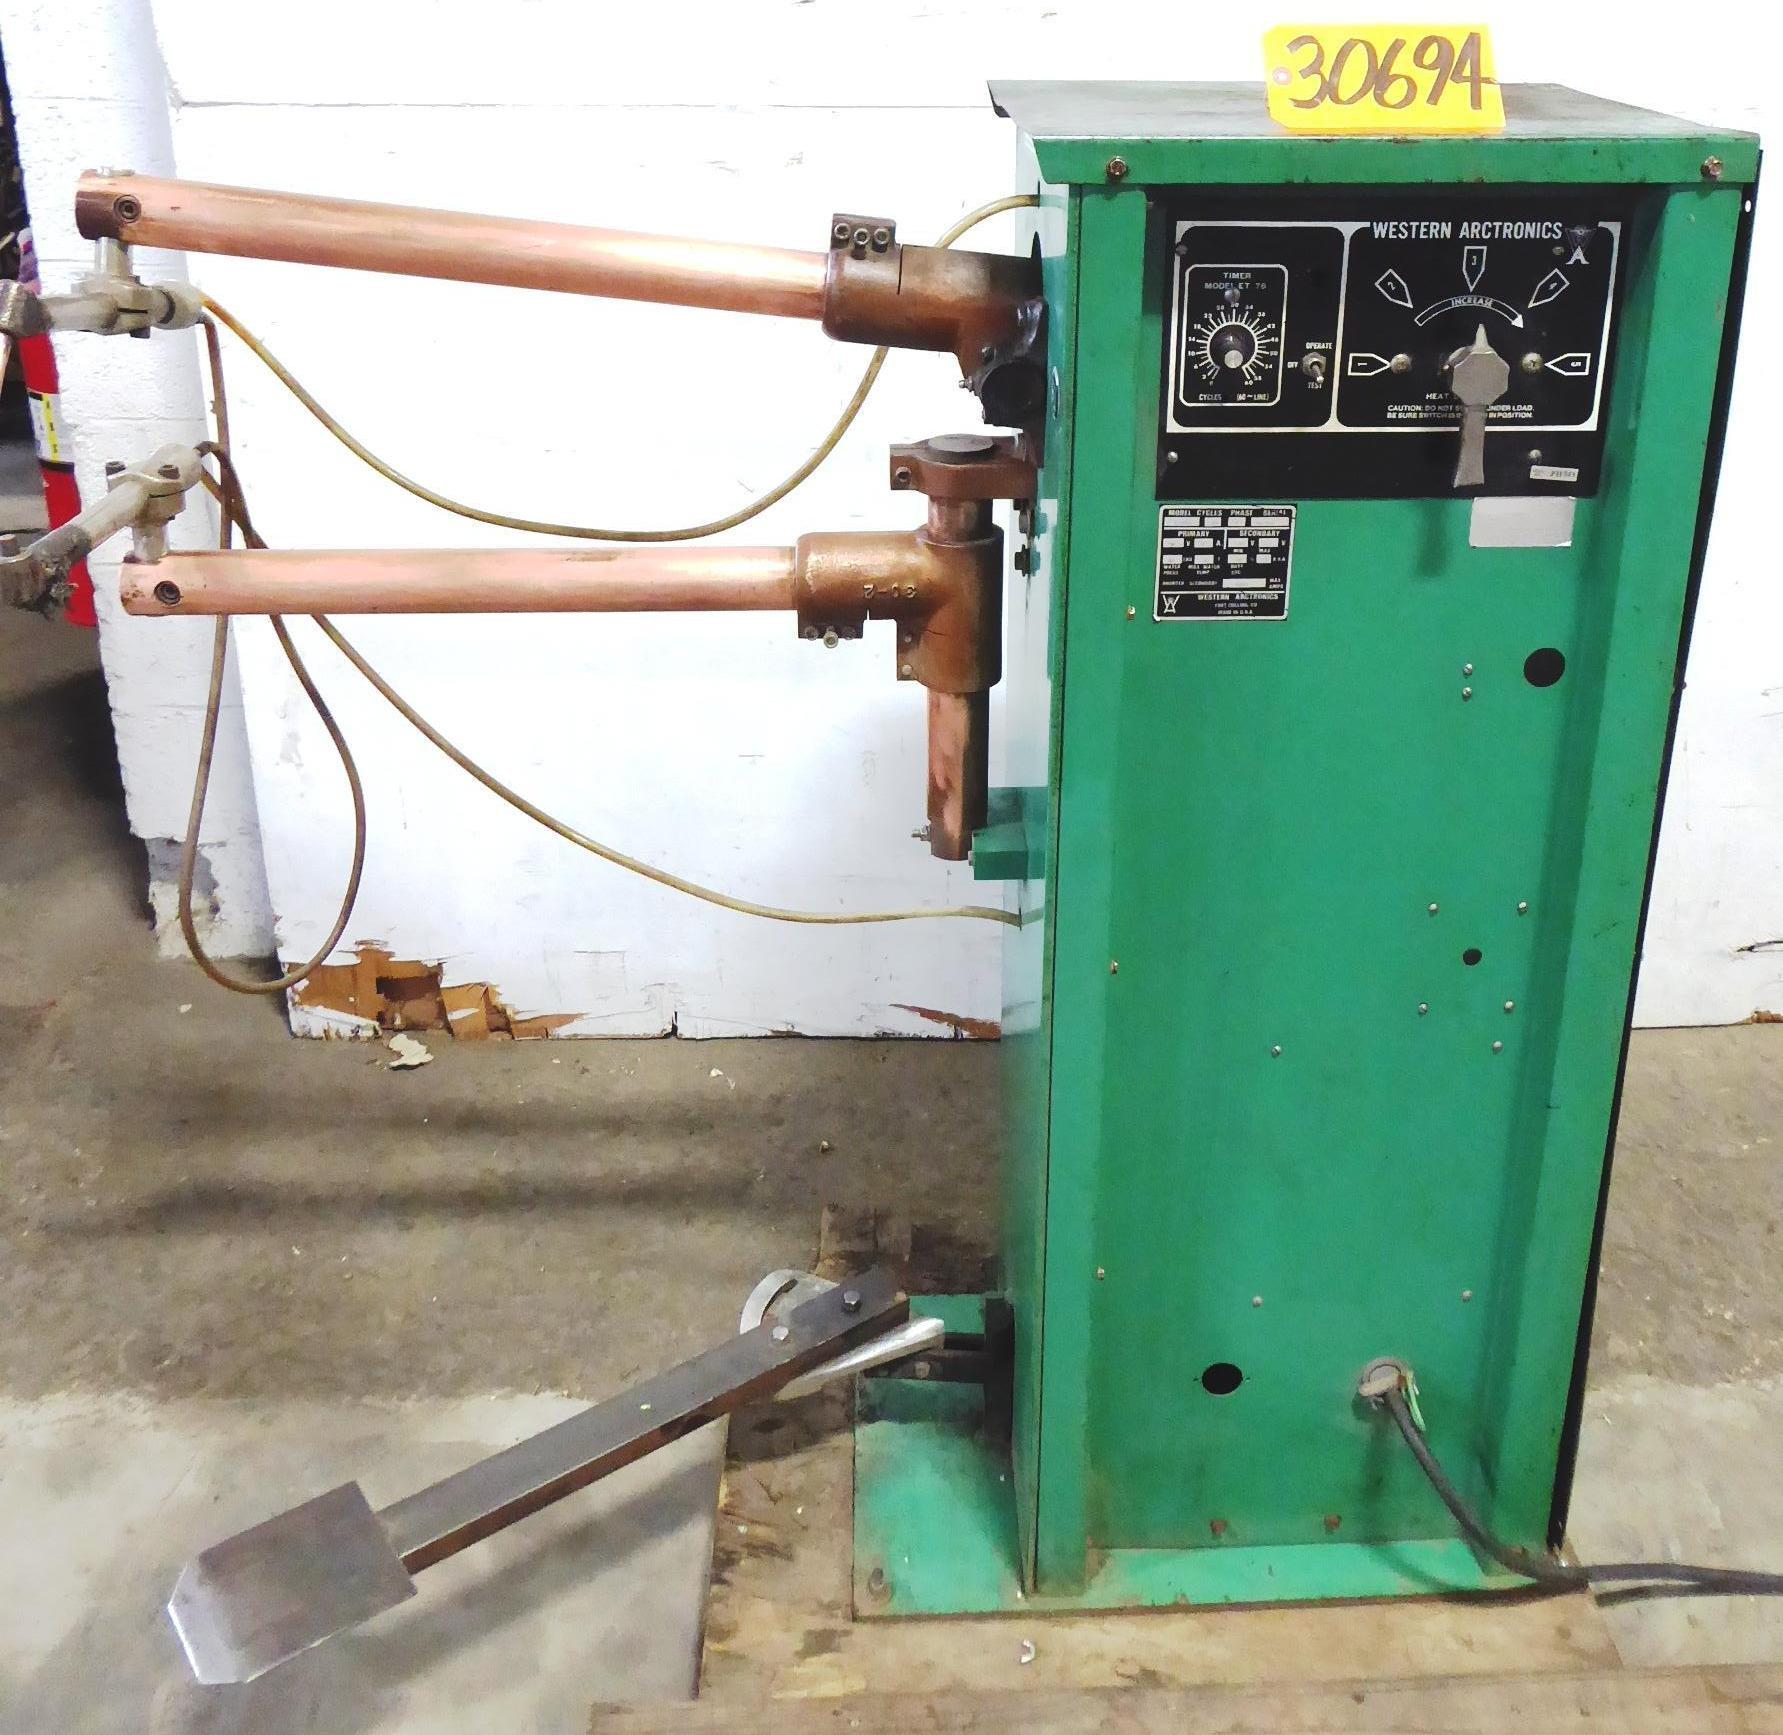 15 KVA Western Arctronics, Rocker Arm, 24″ Throat, 1 Phase